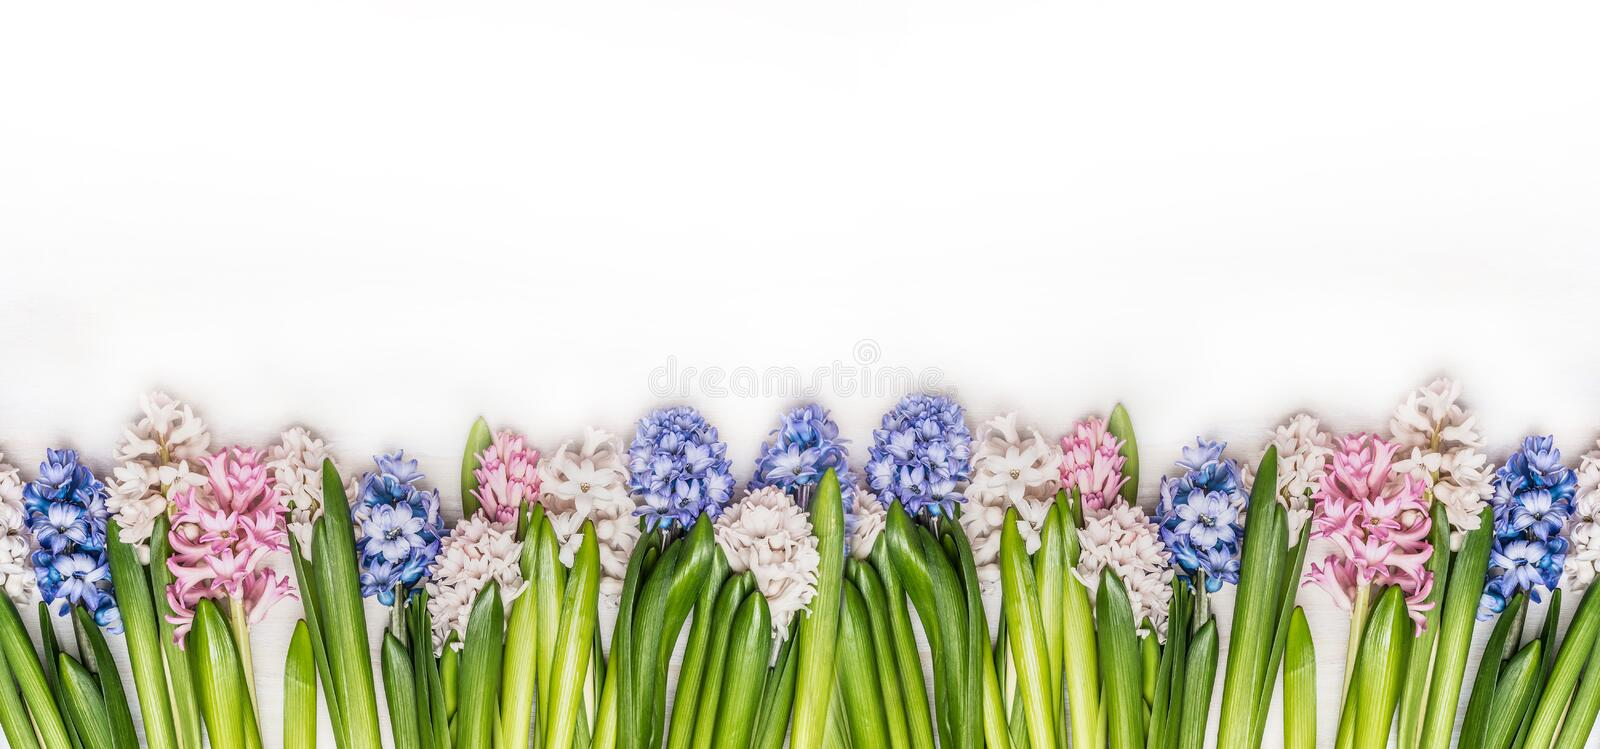 Spring flowers panorama with fresh colorful hyacinths on white download spring flowers panorama with fresh colorful hyacinths on white wooden background top view mightylinksfo